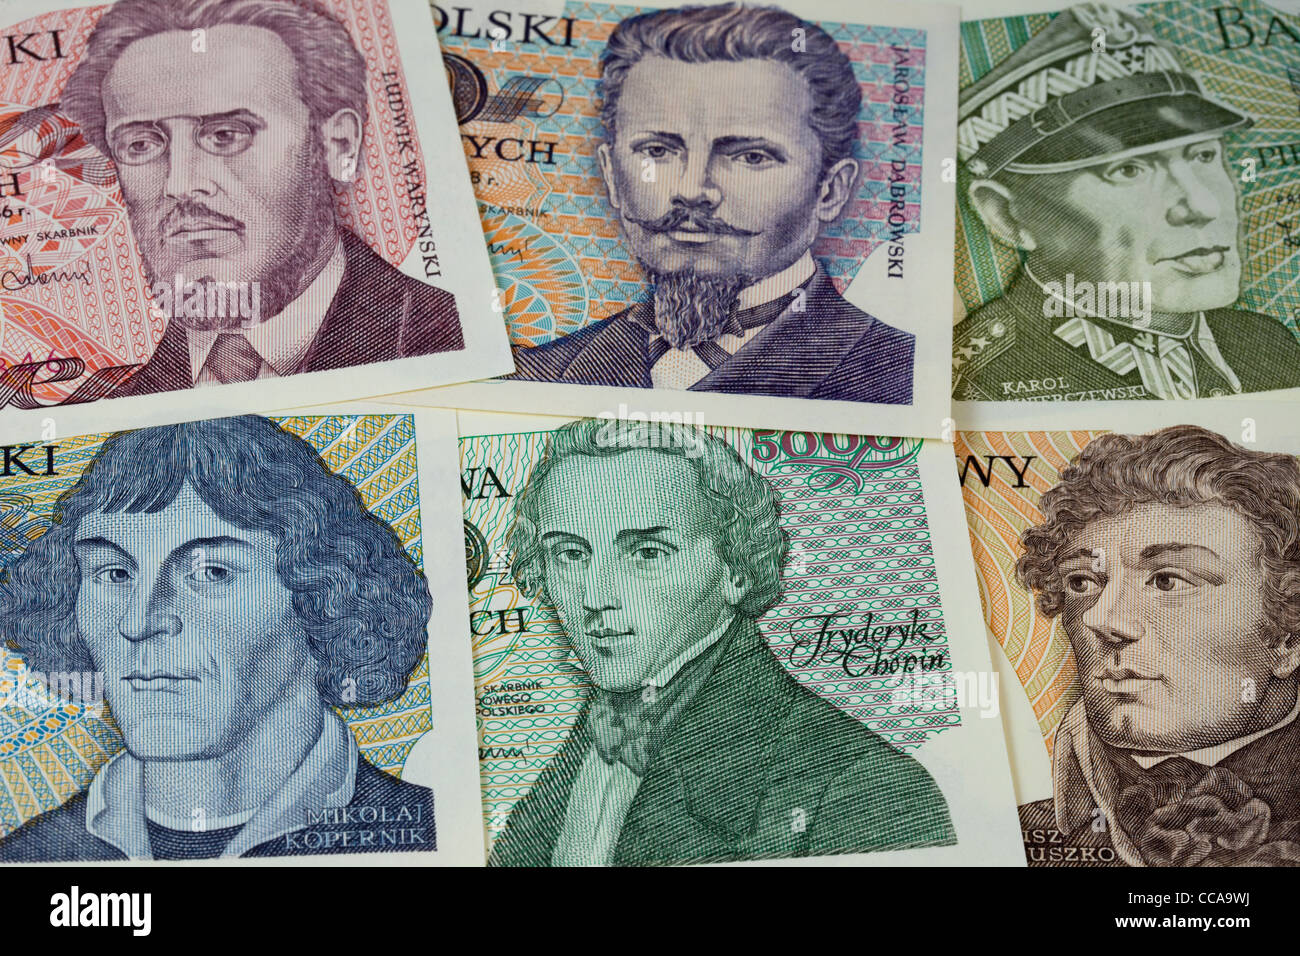 historical portraits (including Chopin and Copernicus) on vintage banknotes from Poland (1970s) - Stock Image